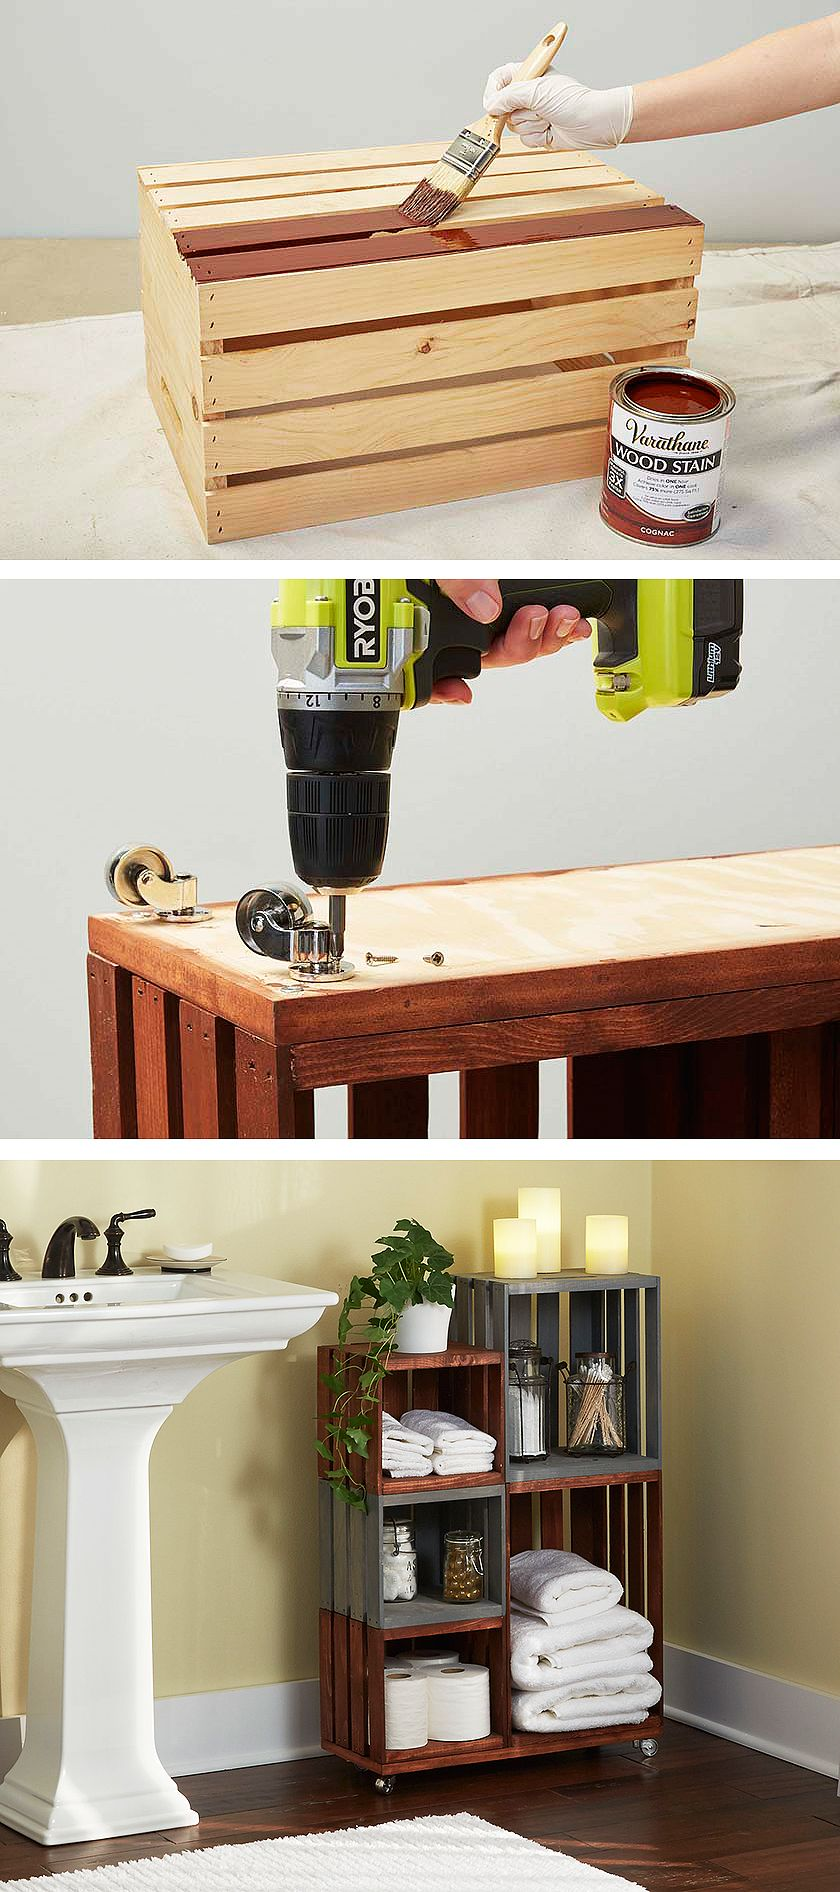 Diy bathroom storage shelves made from wooden crates organization